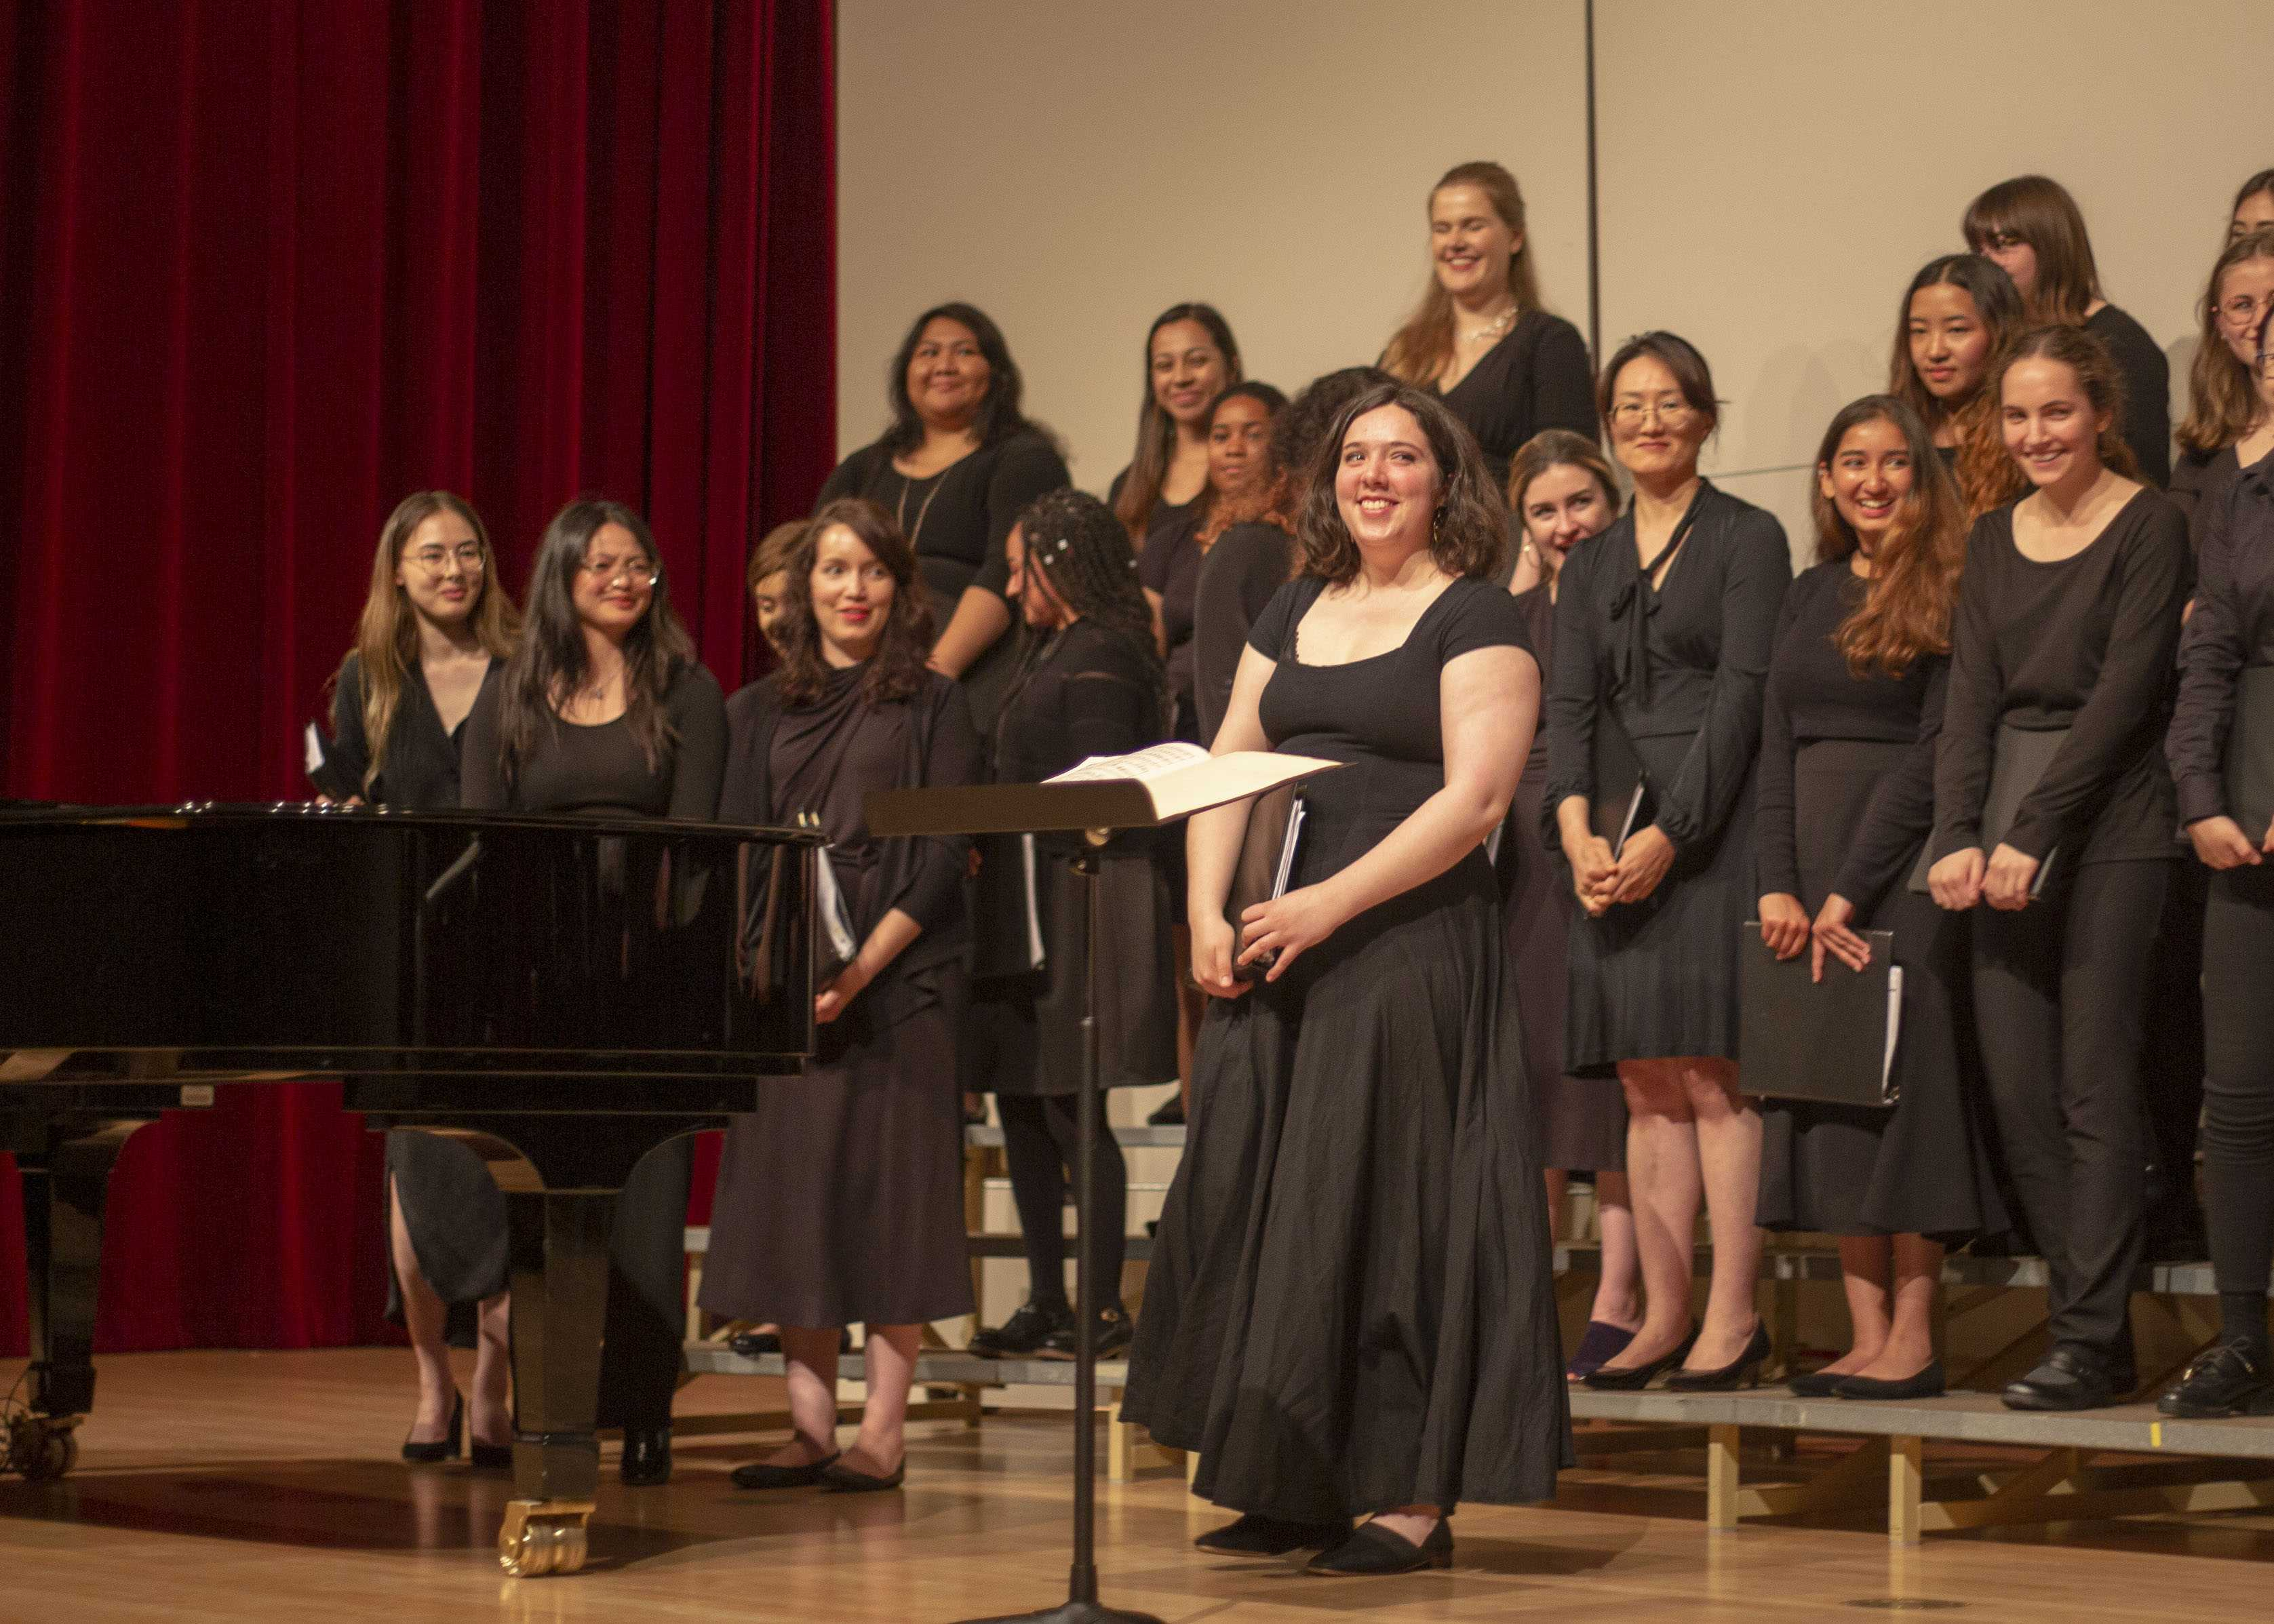 """Ana Miranda steps forward for applause at the end of """"In Paradisum"""" an opera concert by SF State's University Chorus Apr 25, 2019 (James Chan)"""